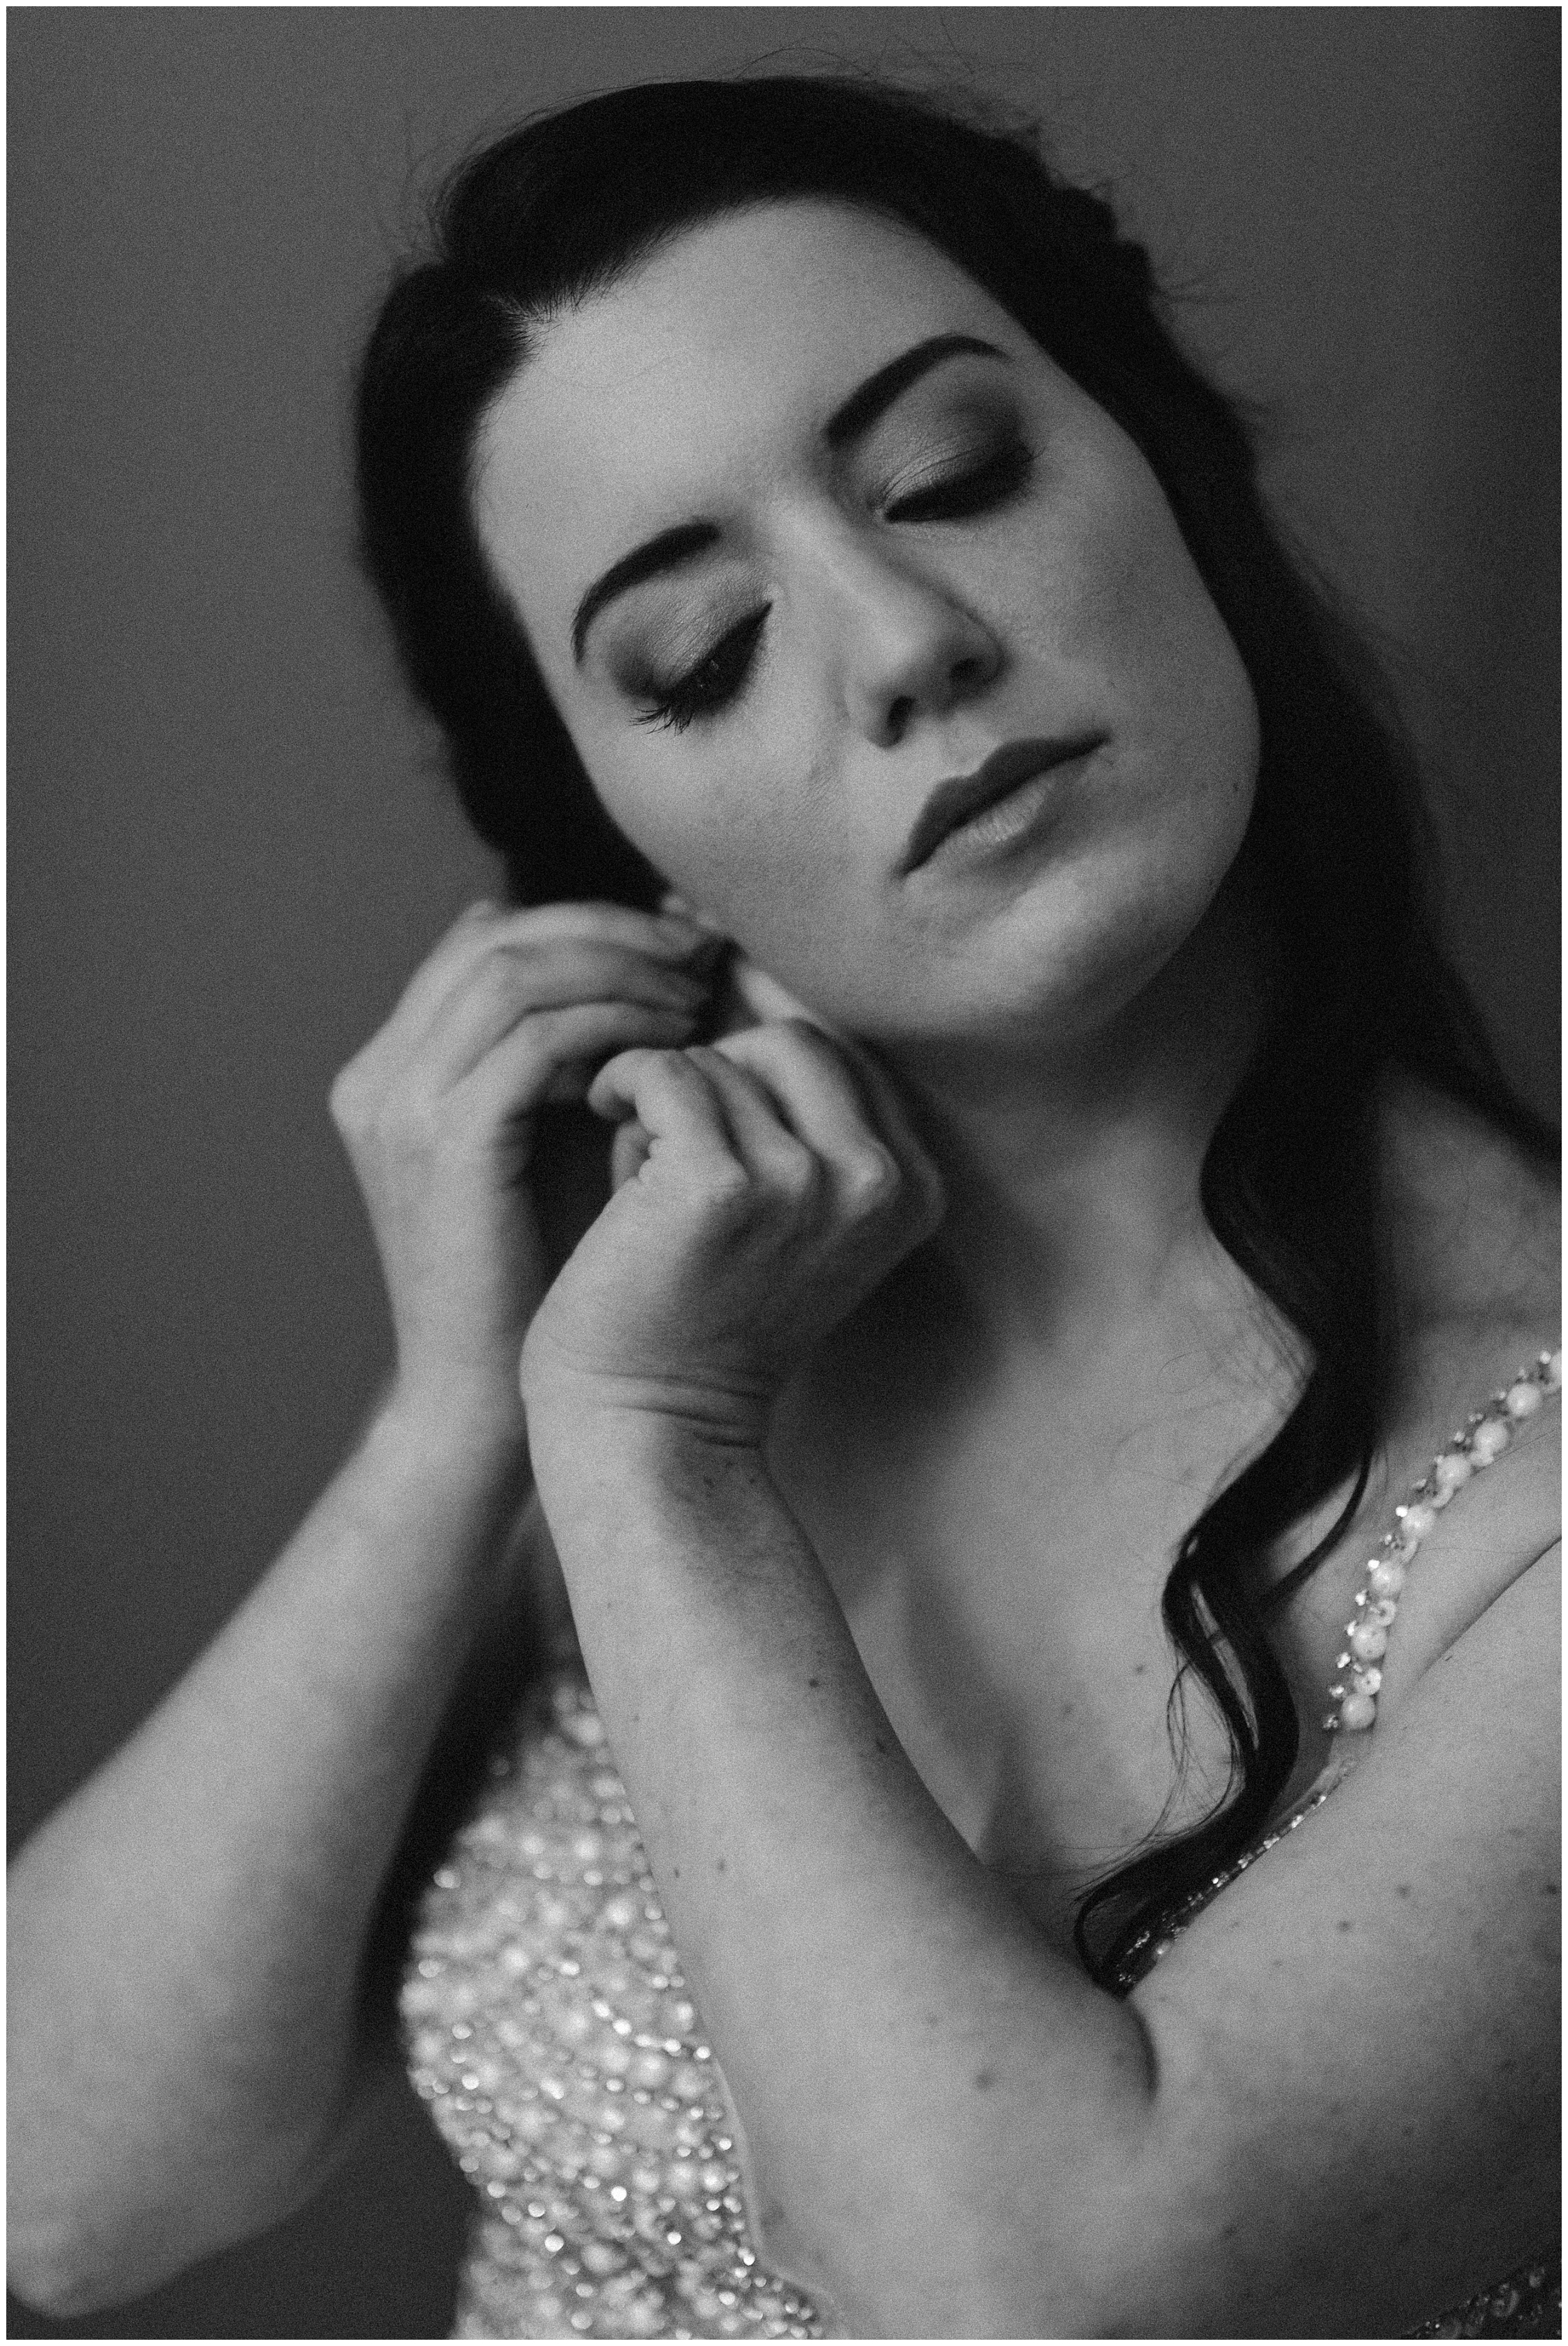 This black and white elopement photo captured by adventure wedding photographer Adventure Instead shows Katie putting on a pearl earring on her right ear. Her dress, beaded with pearl details, glistens in the light.